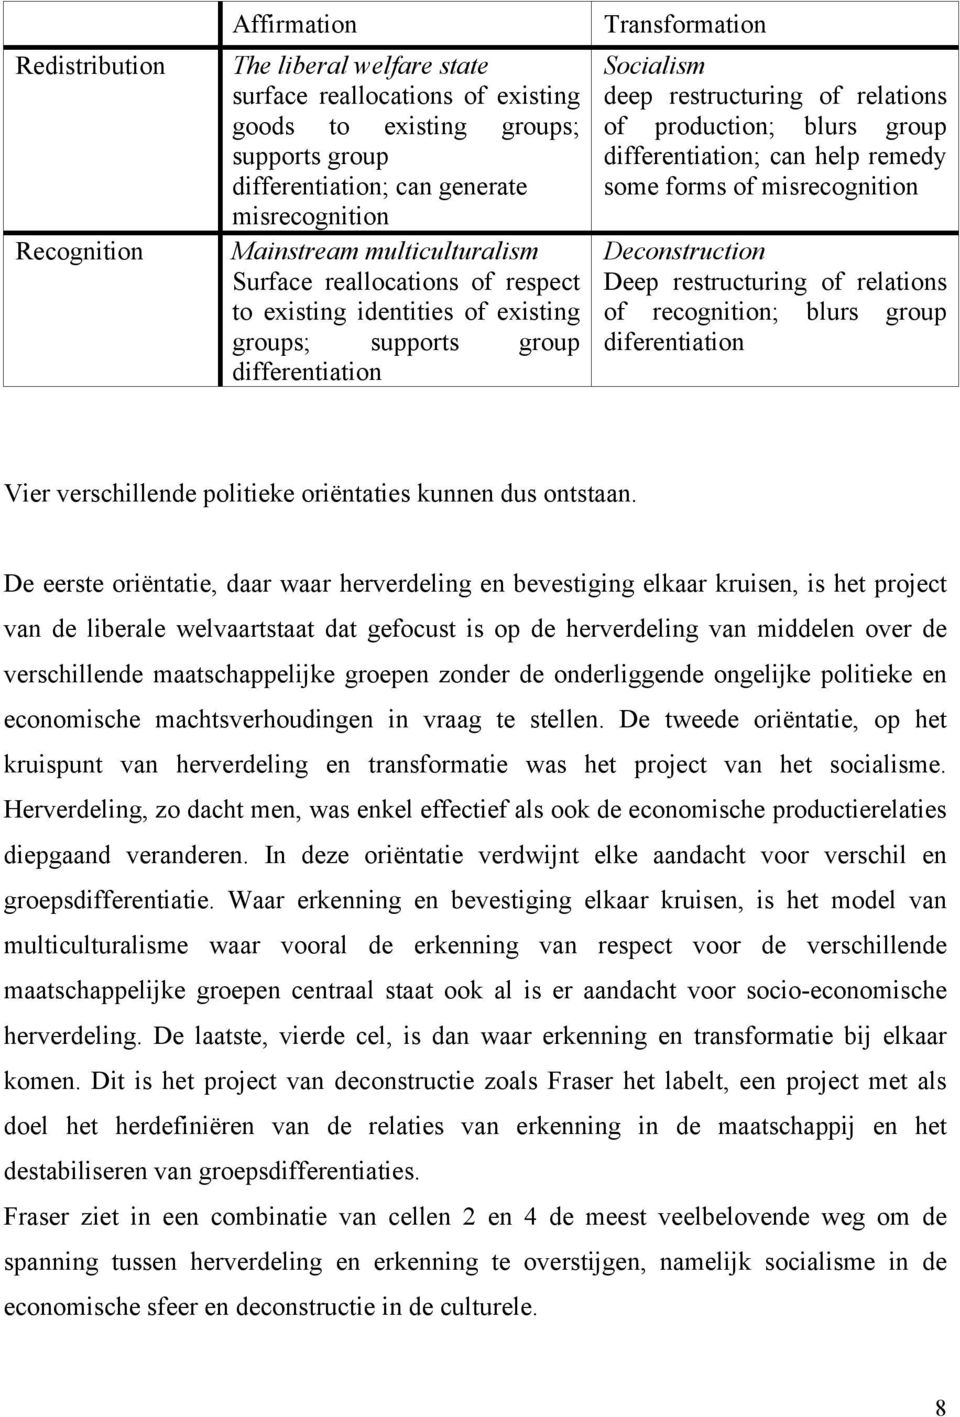 blurs group differentiation; can help remedy some forms of misrecognition Deconstruction Deep restructuring of relations of recognition; blurs group diferentiation Vier verschillende politieke